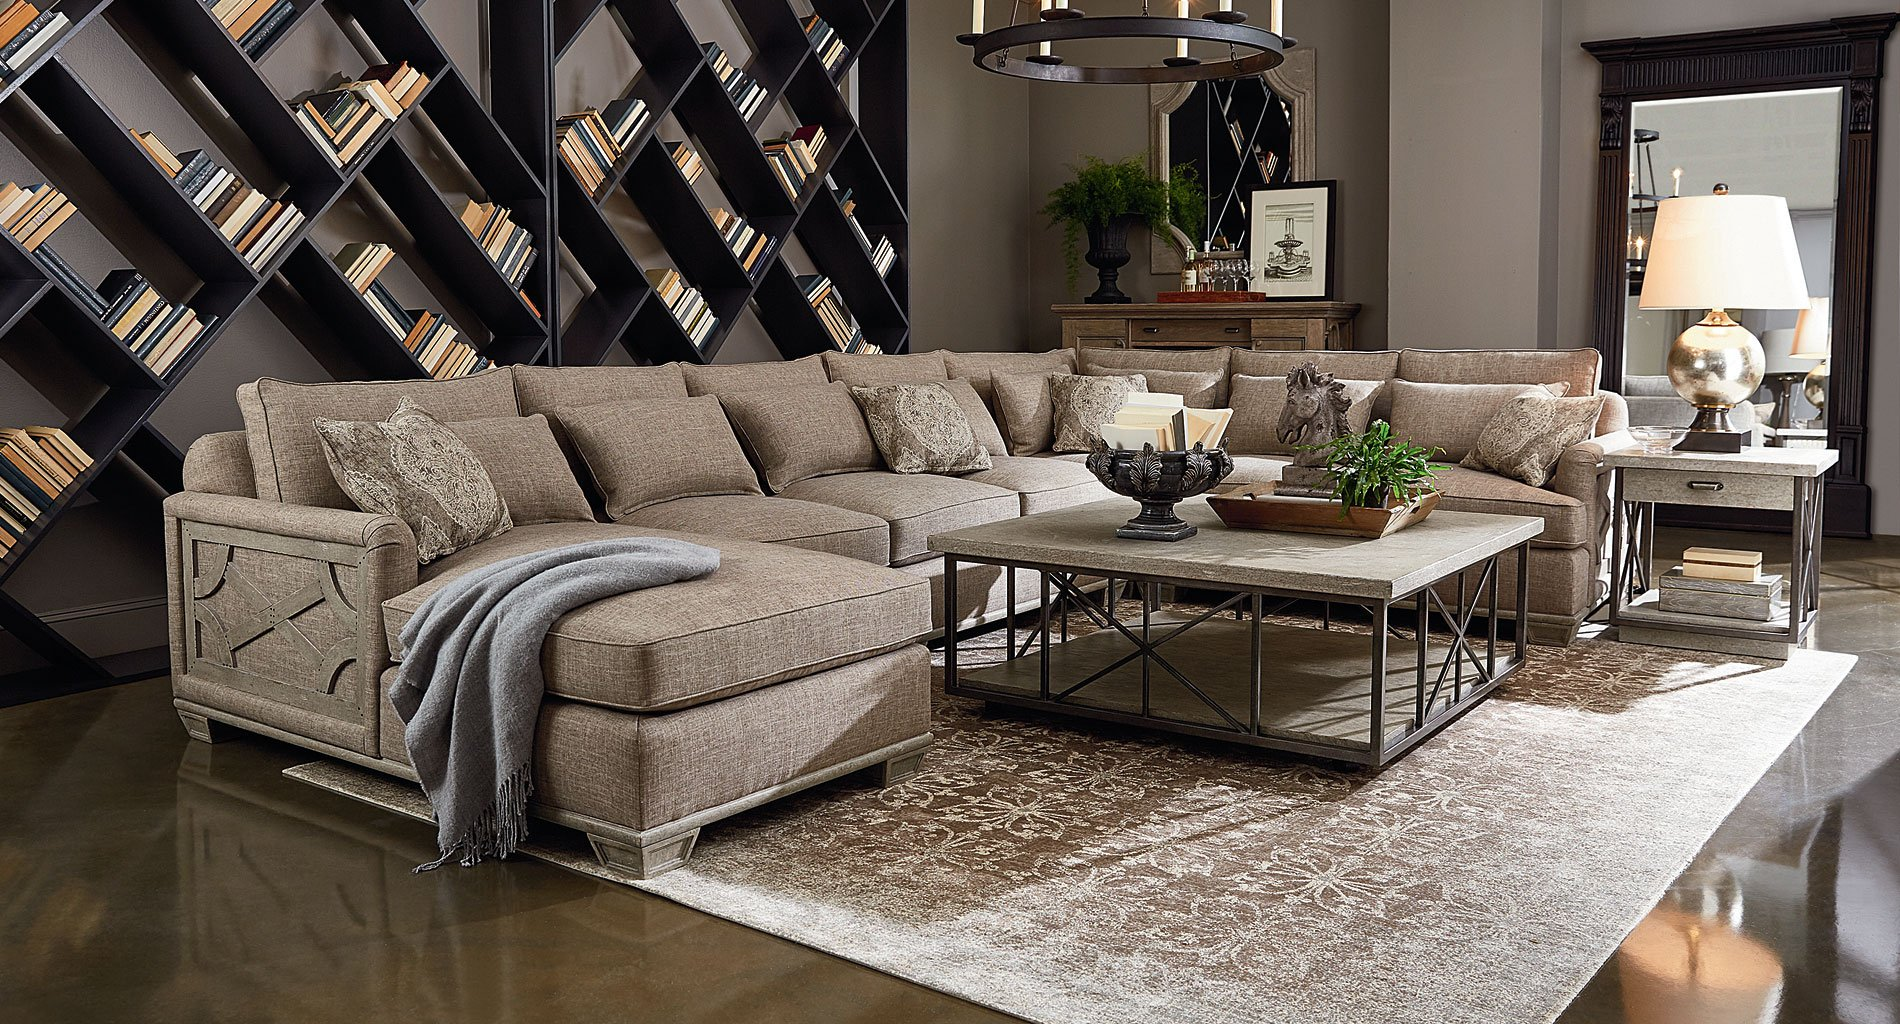 Arch Salvage Jardin Modular Sectional Set